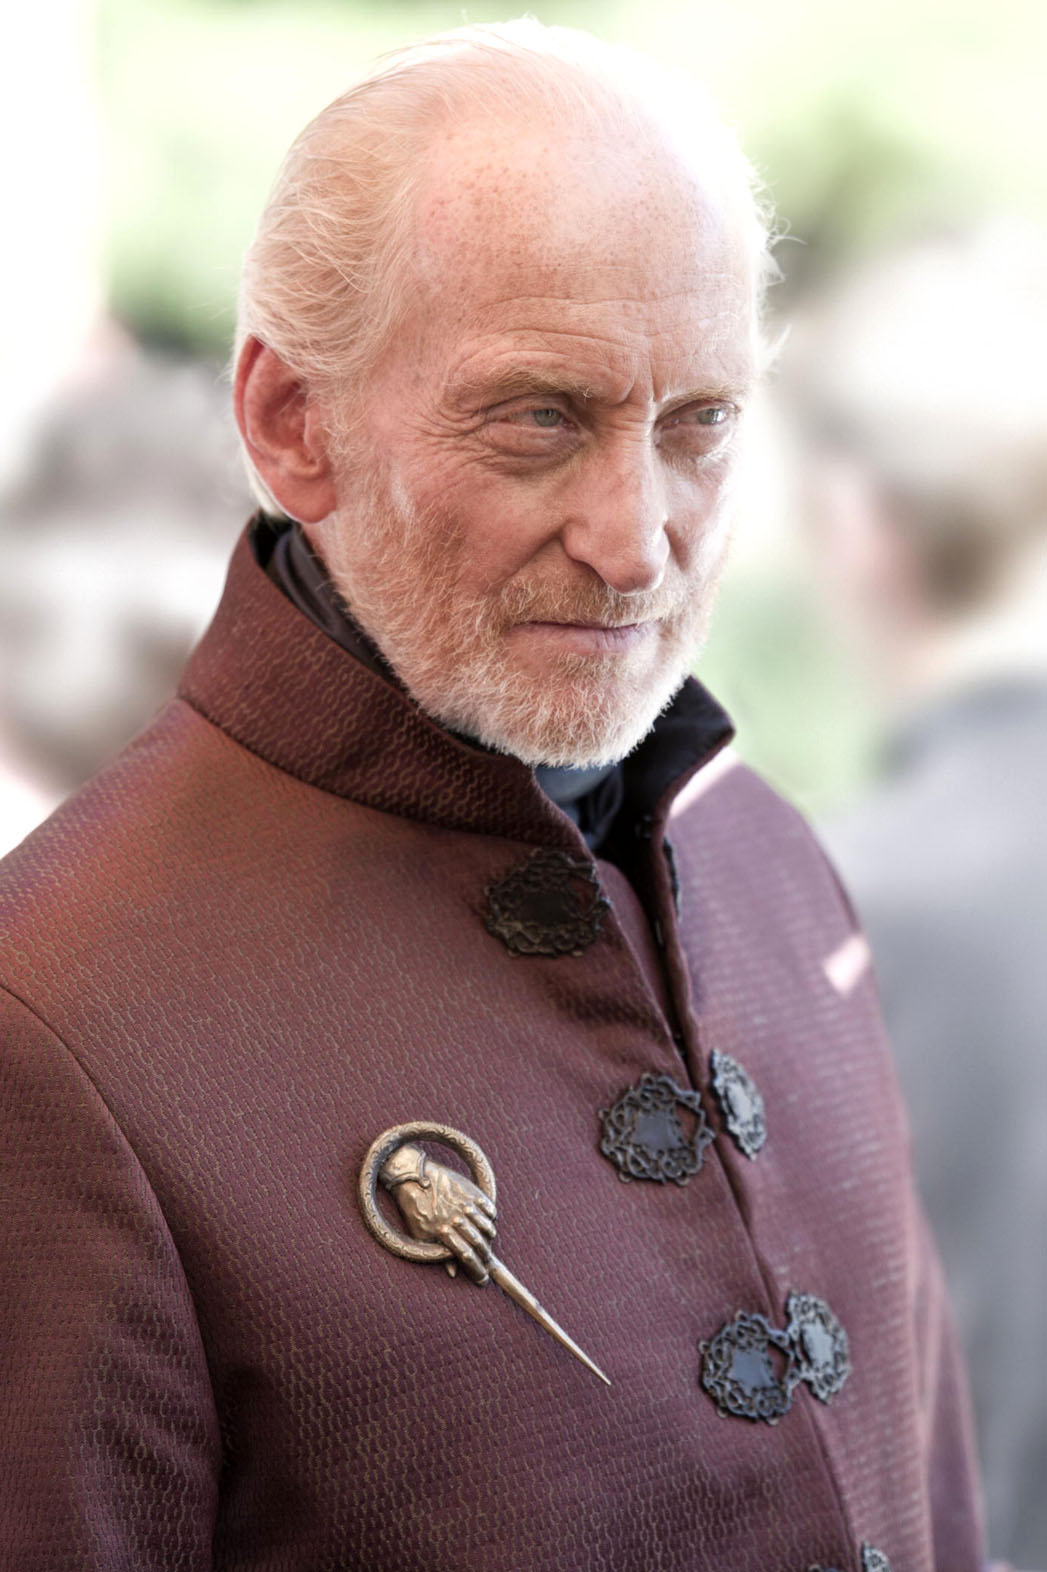 Lord Tywin Lannister